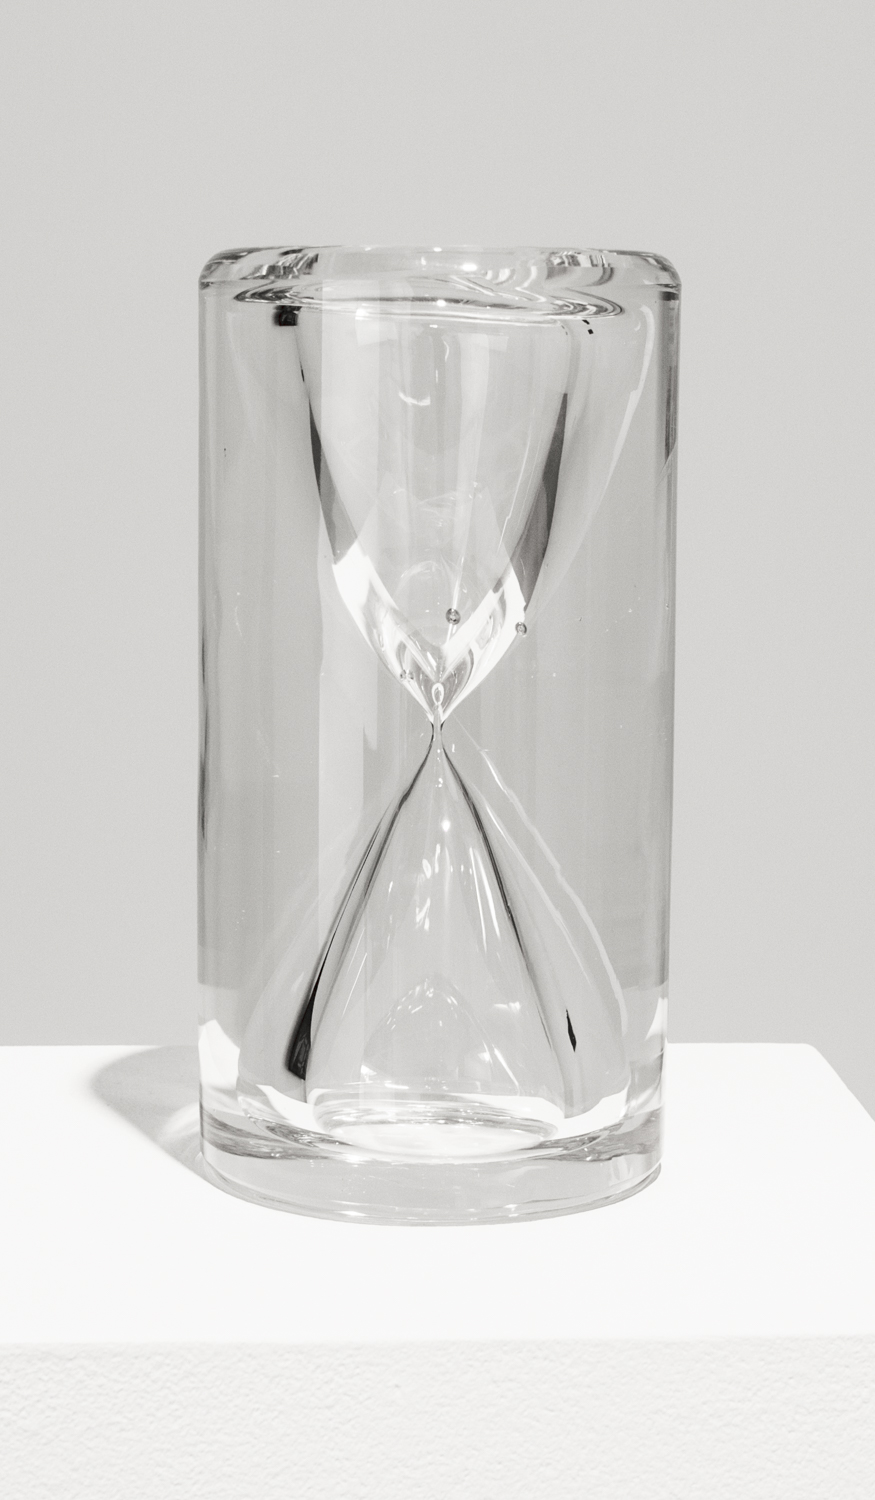 Hourglass , 2013, 6.6 x 3.5 inches, glass